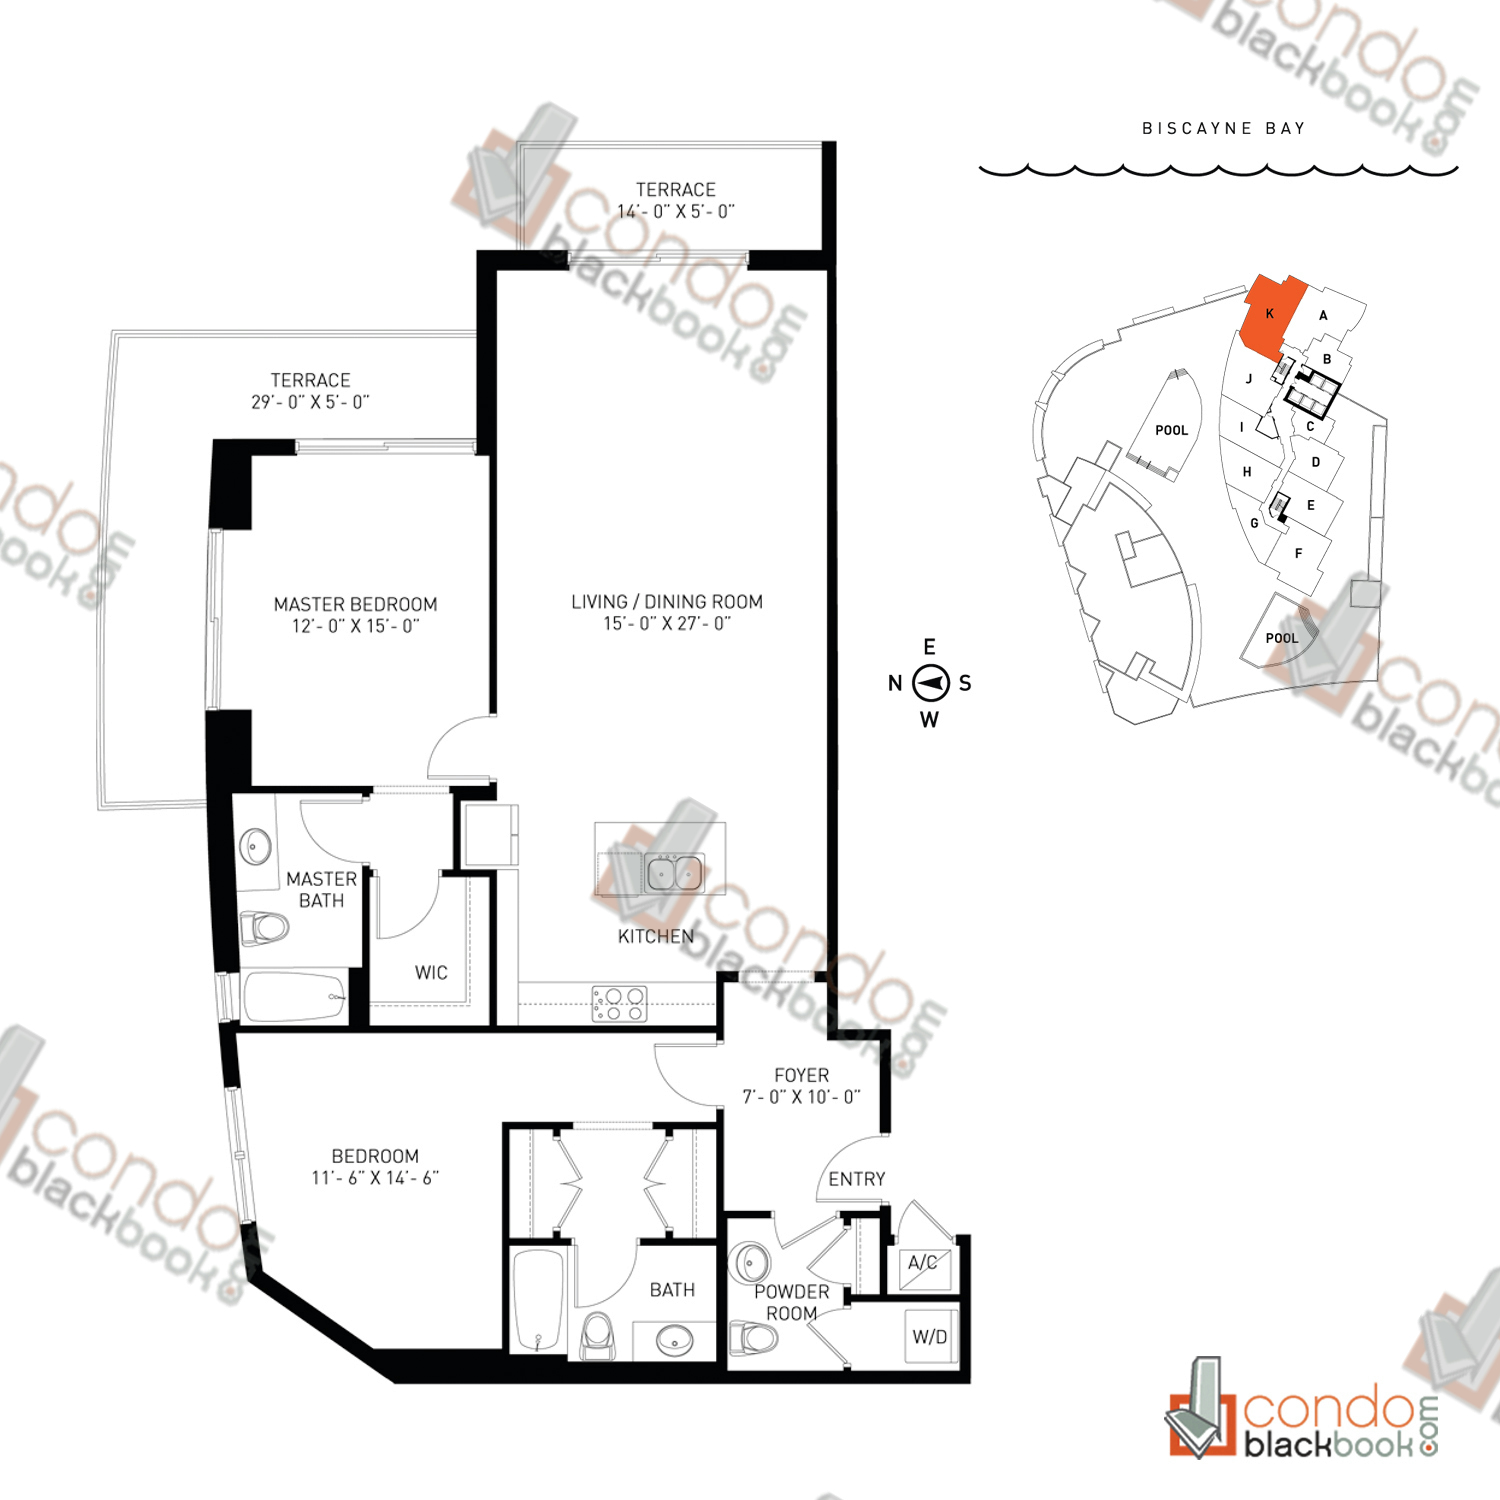 Floor plan for Quantum on the Bay Edgewater Miami, model Residence_K, line 02S, 2/2.5 bedrooms, 1,400 sq ft